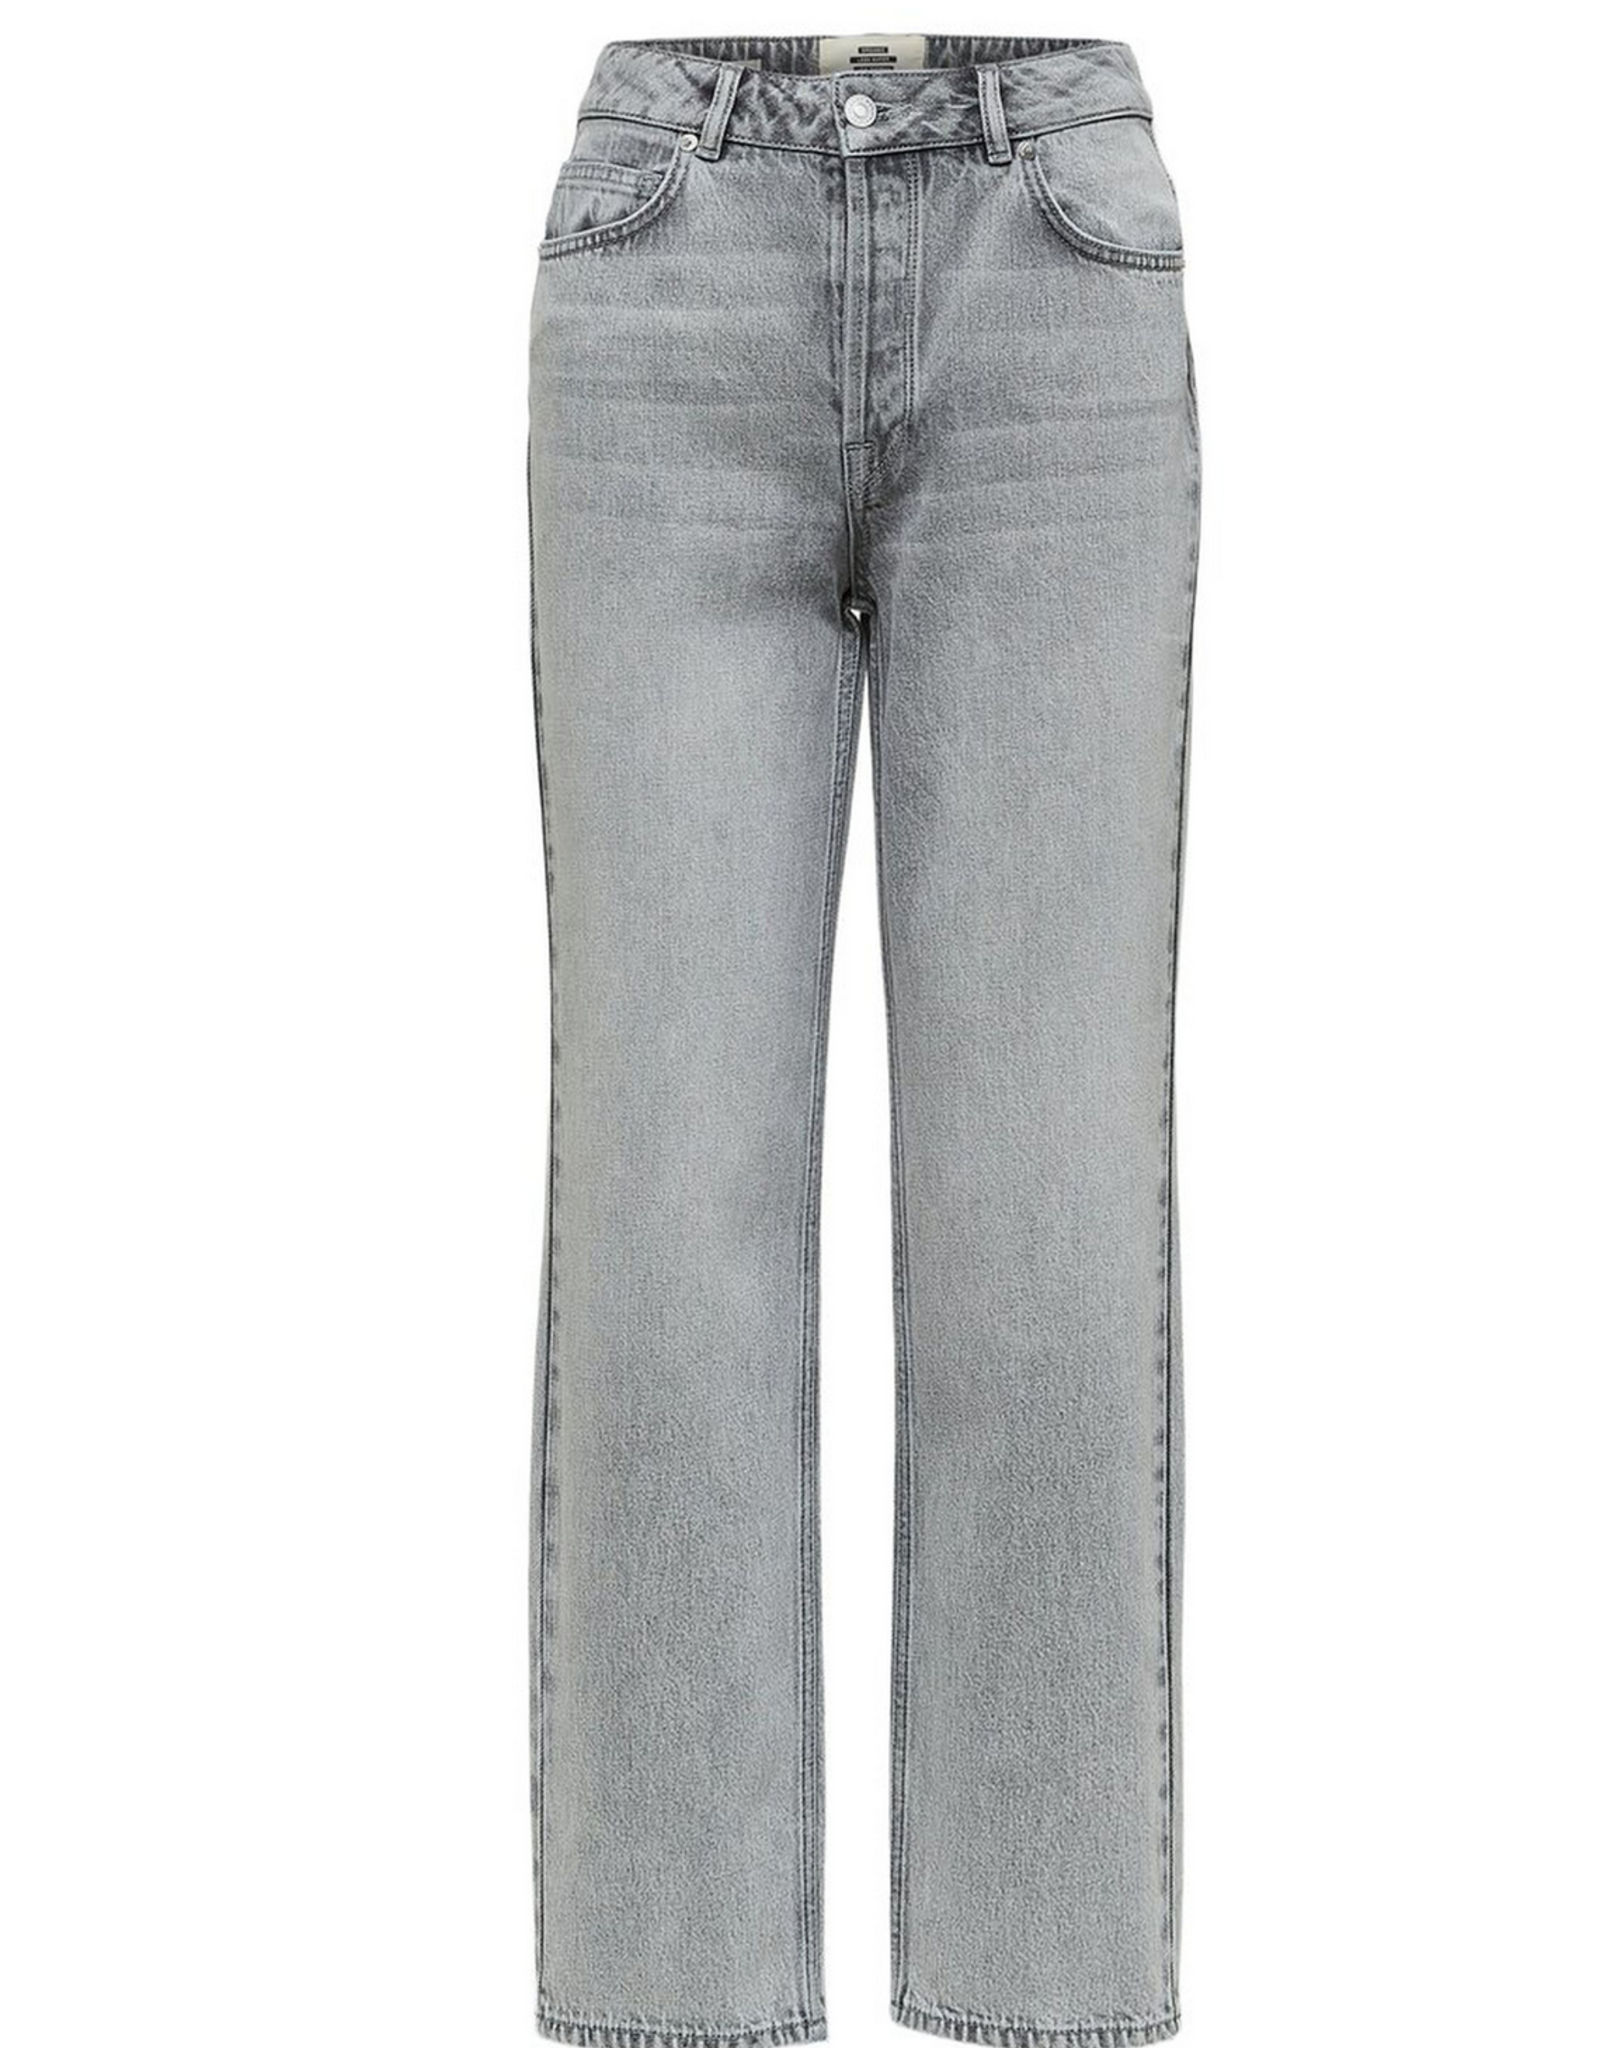 Selected Femme Kate jeans grey